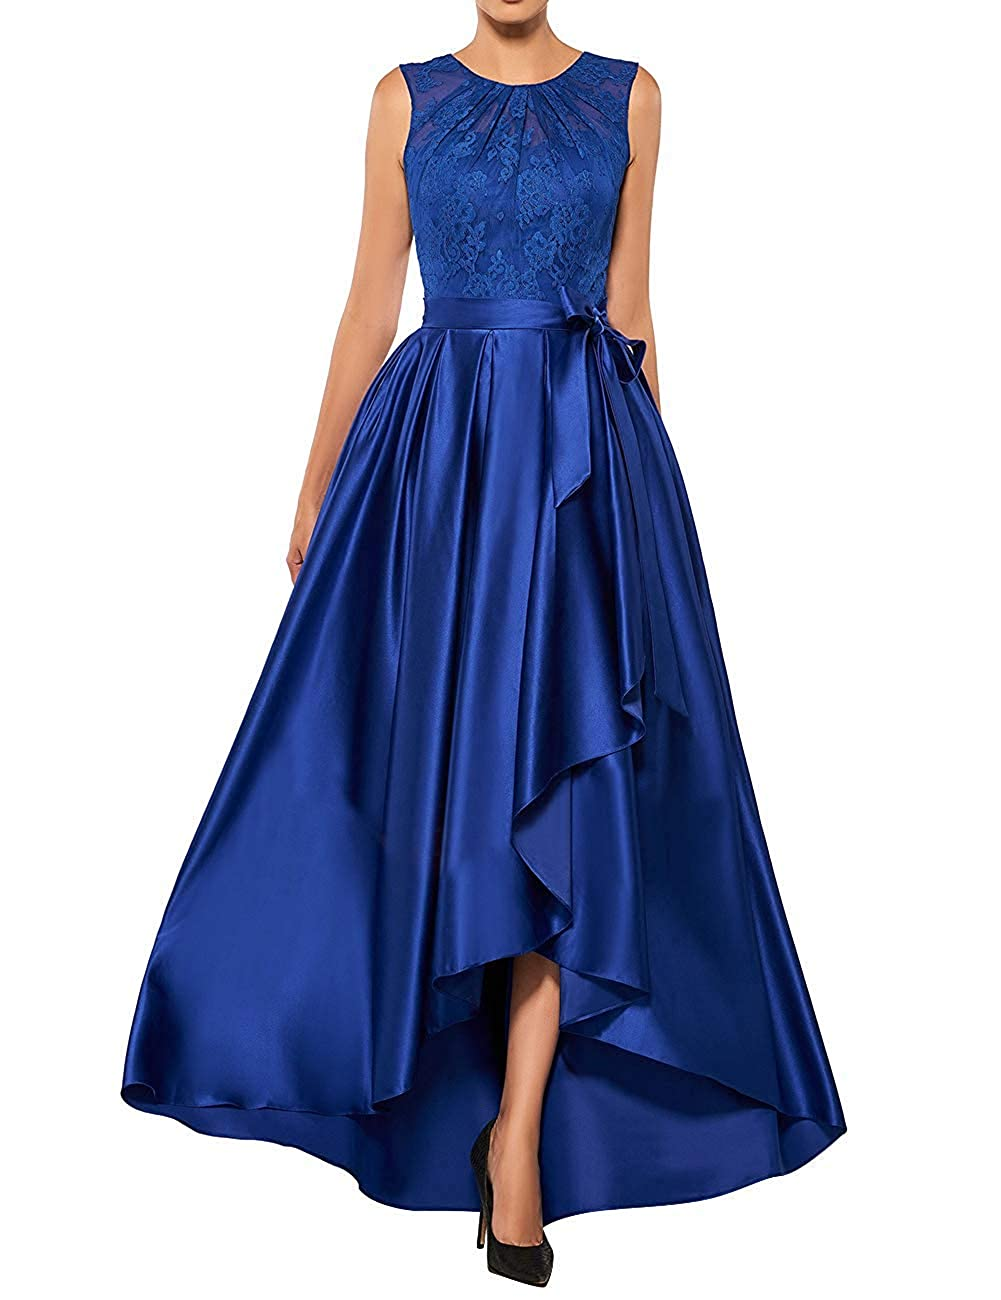 Royal bluee JINGDRESS Satin Mother of The Bride Dresses High Low Formal Evening Party Gowns for Wedding